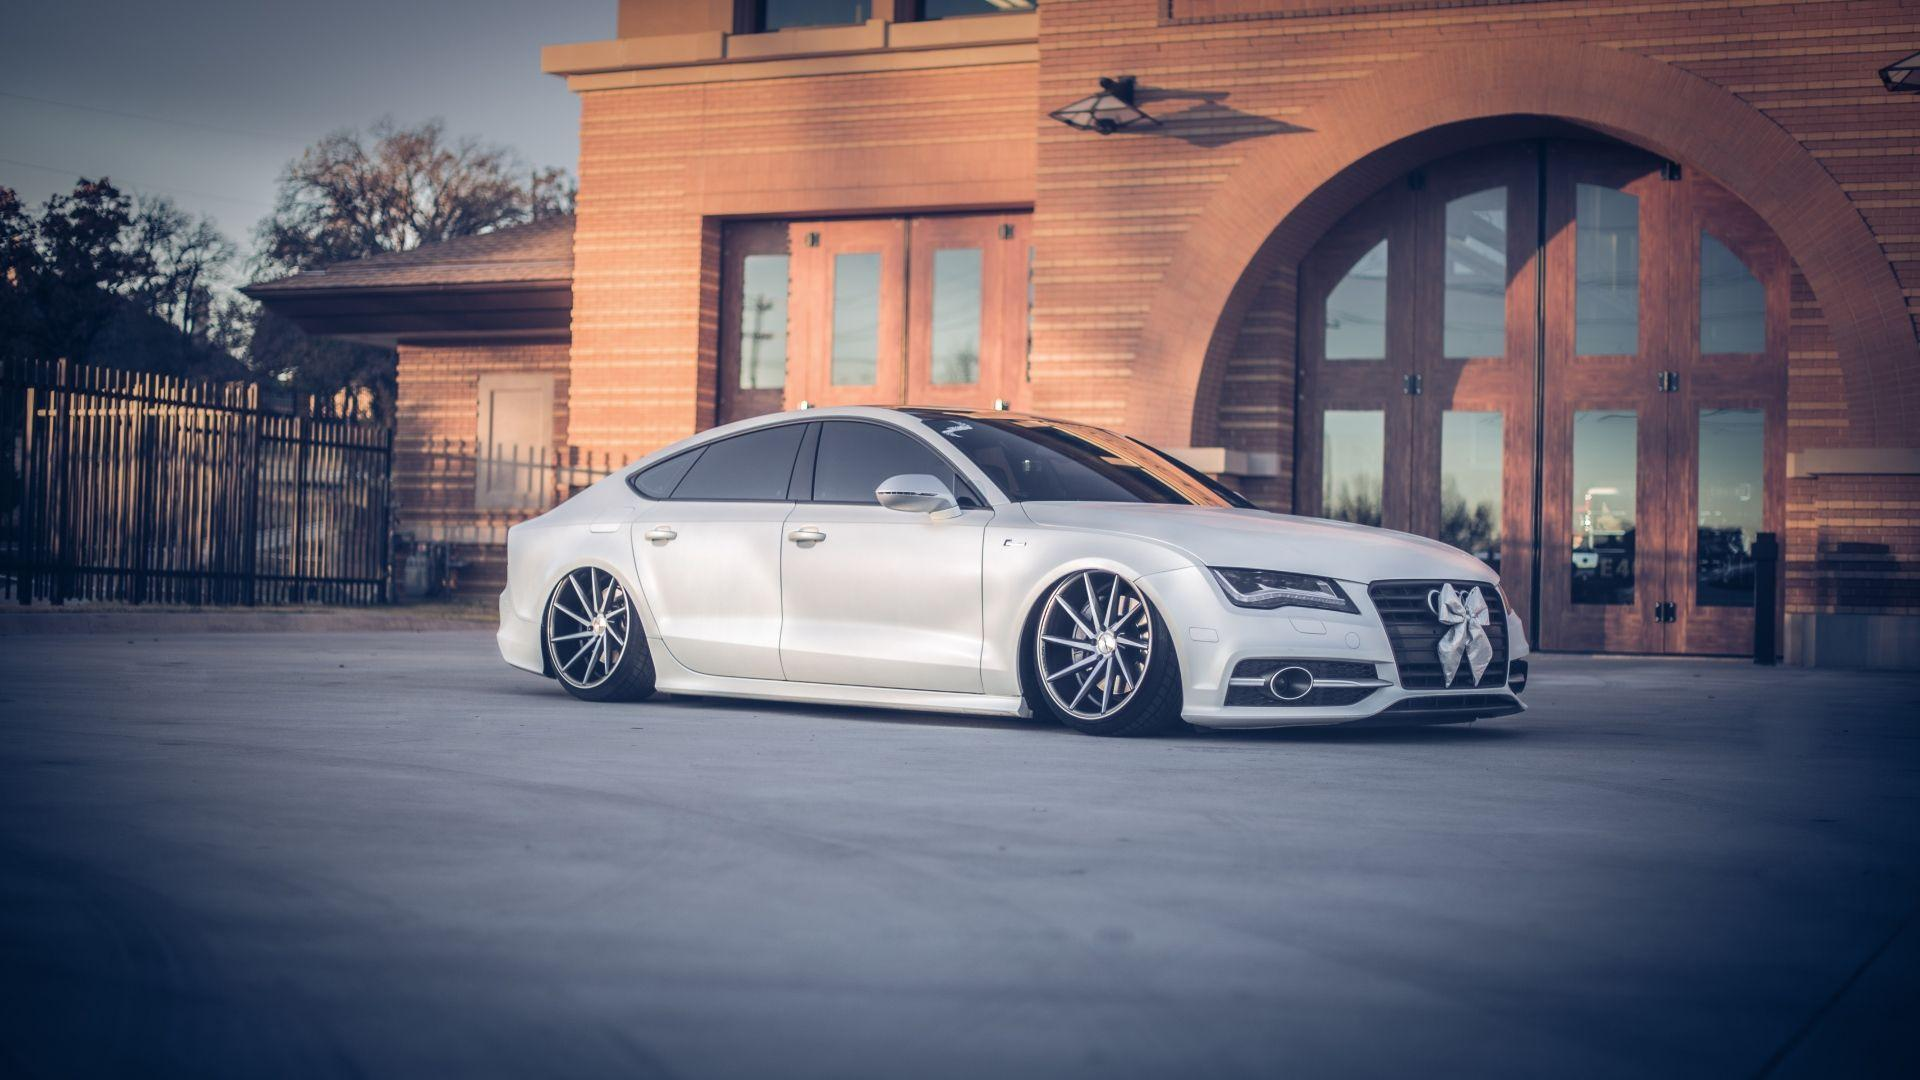 Download Wallpapers 1920x1080 Audi, A7, Vossen, Tuning, Wheels Full